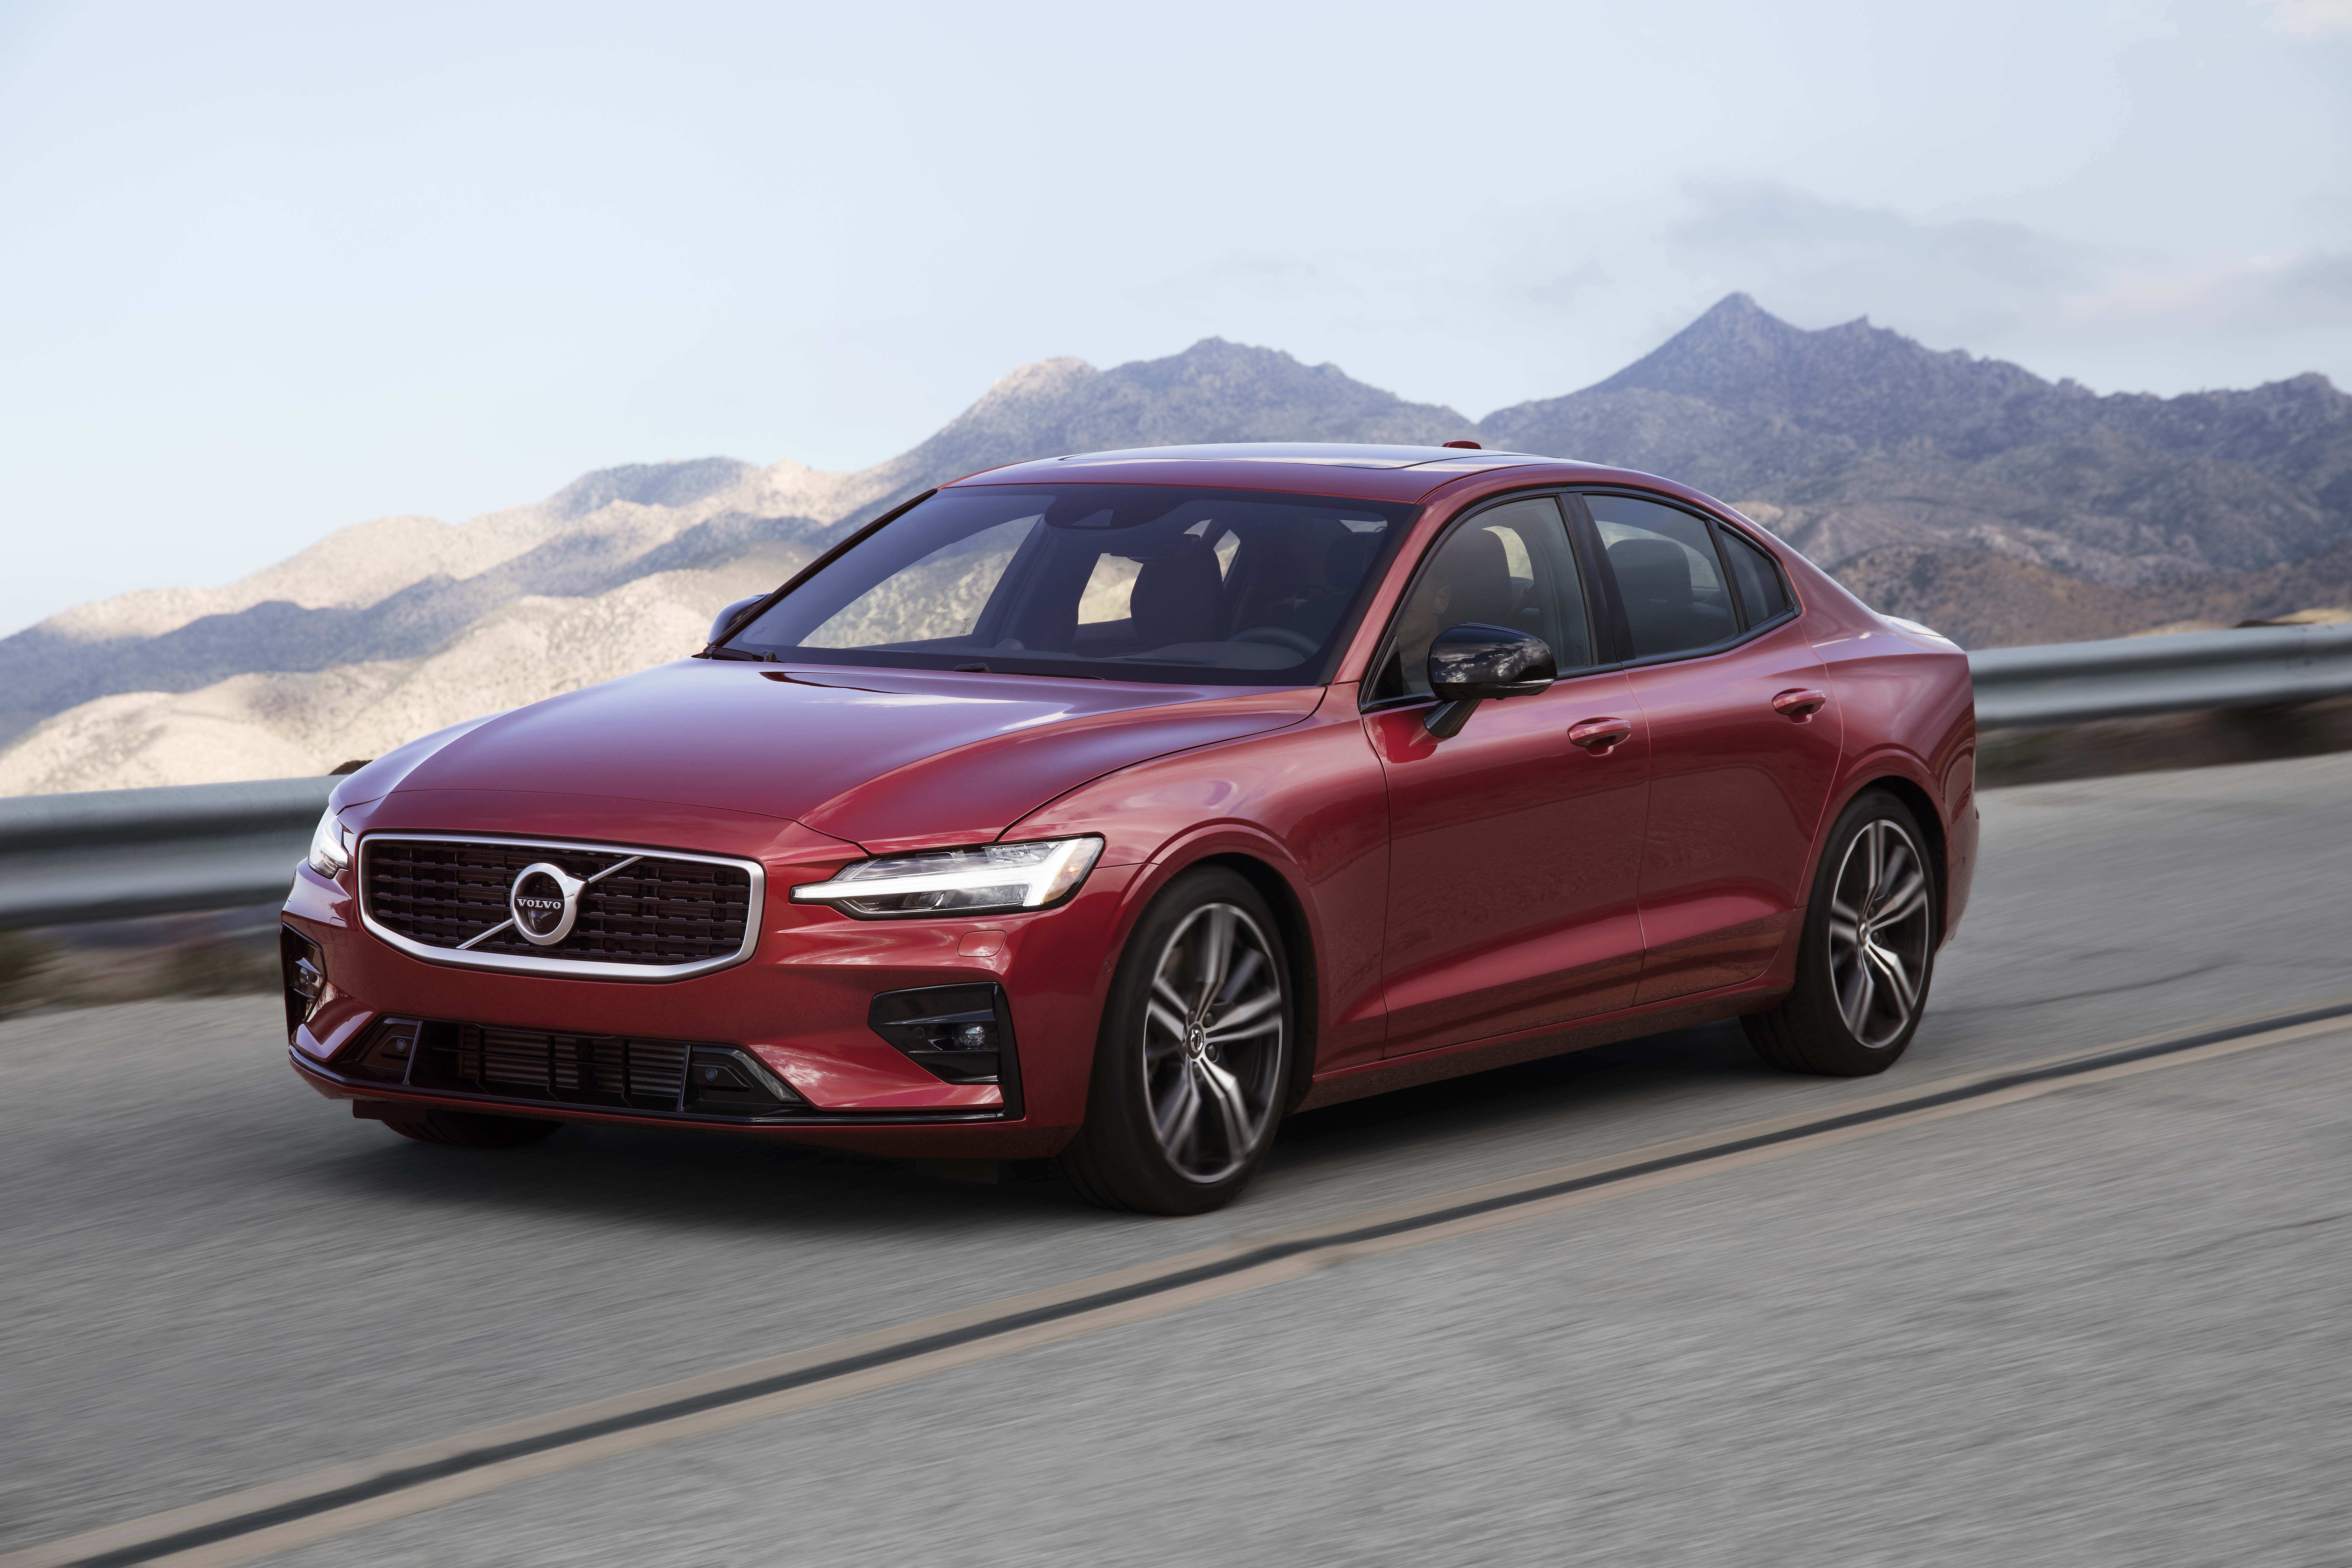 71 Great 2020 Volvo S60 Length Photos for 2020 Volvo S60 Length